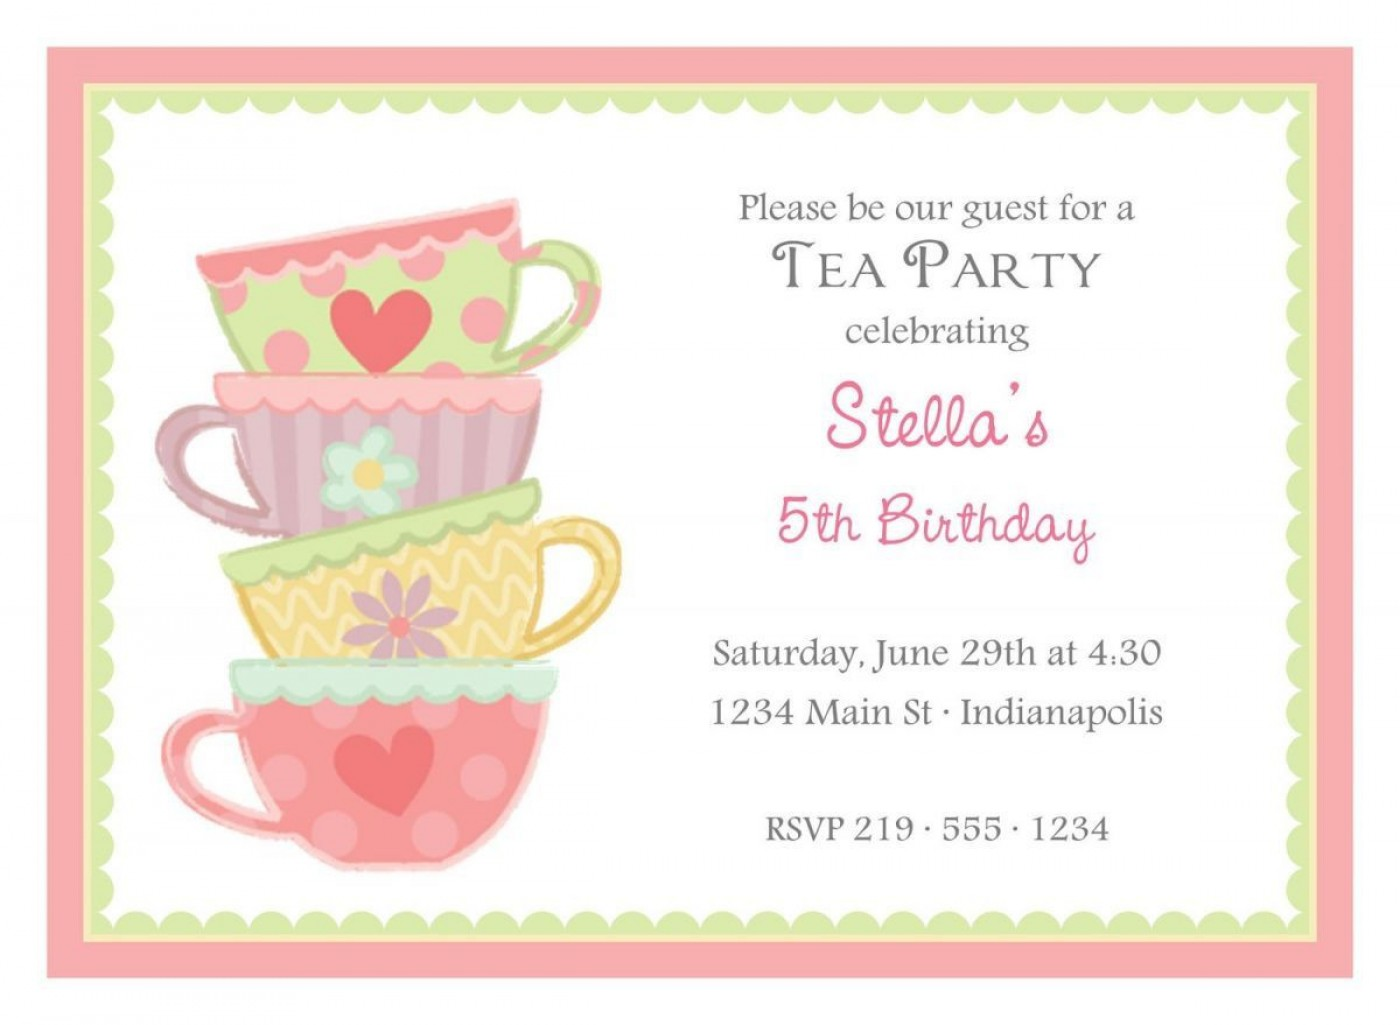 003 Formidable Tea Party Invitation Template Image  Card Victorian Wording For Bridal Shower1400